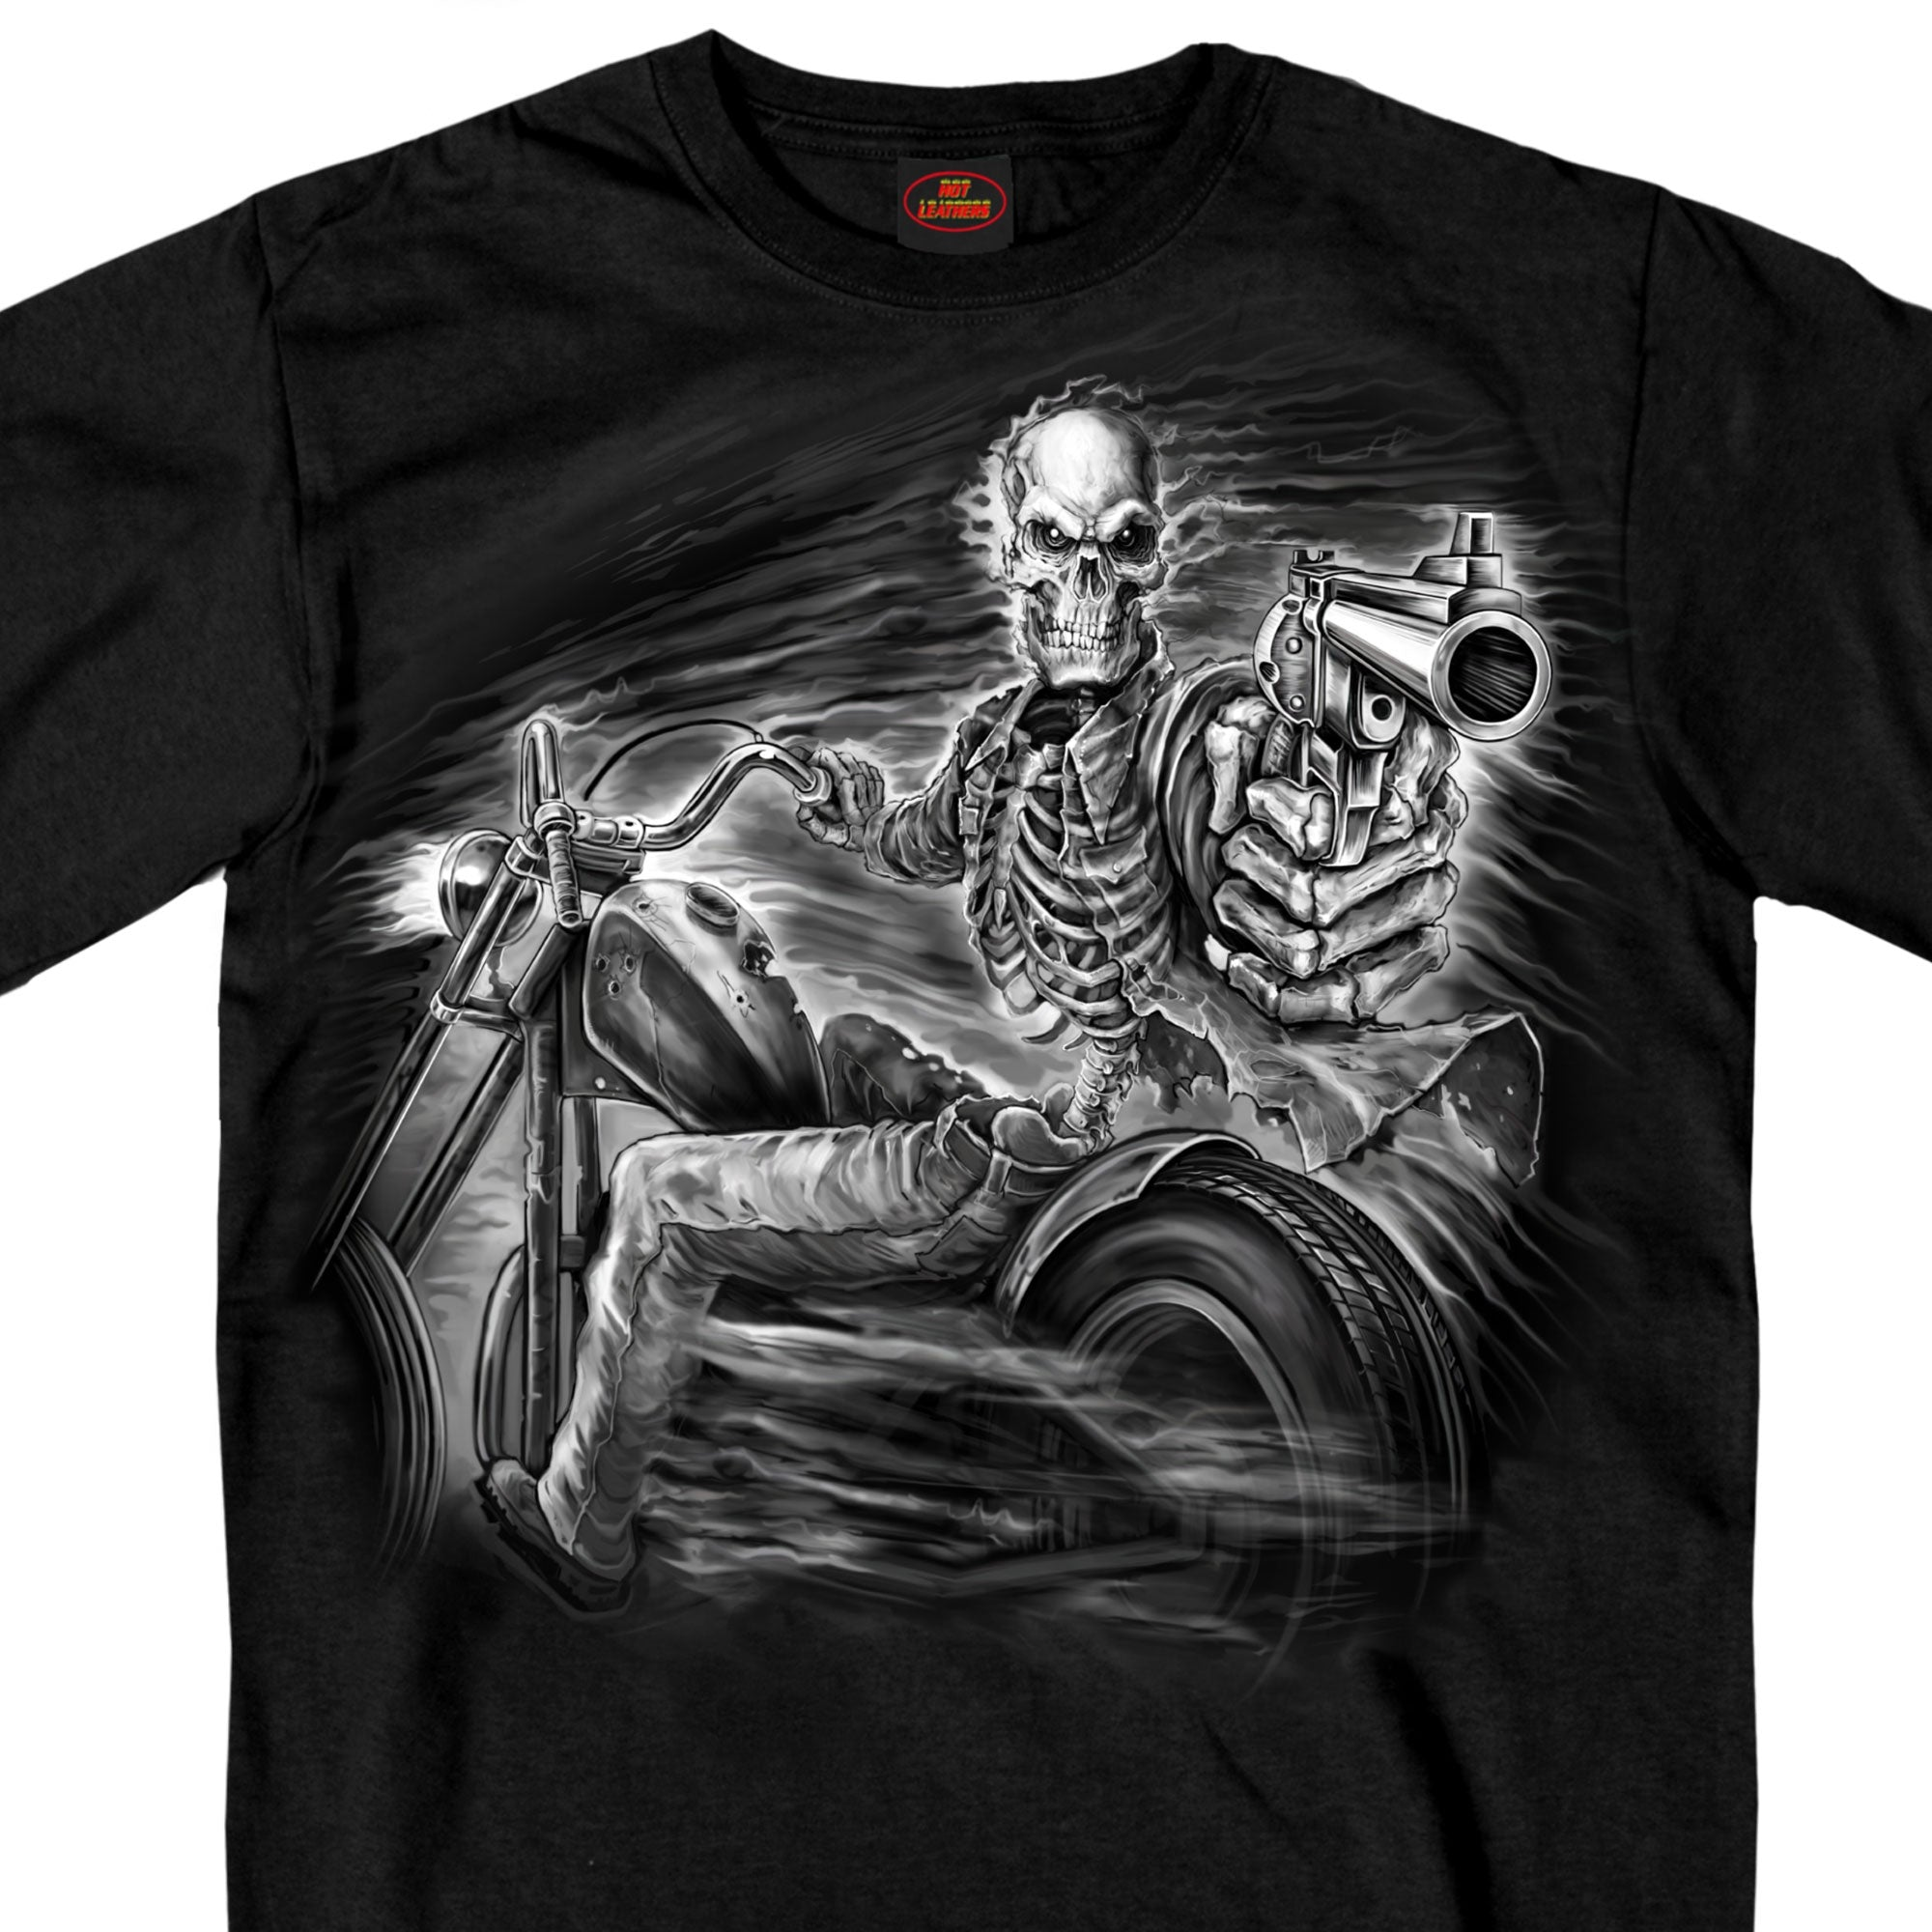 Hot Leathers Assassin Rider T-Shirt